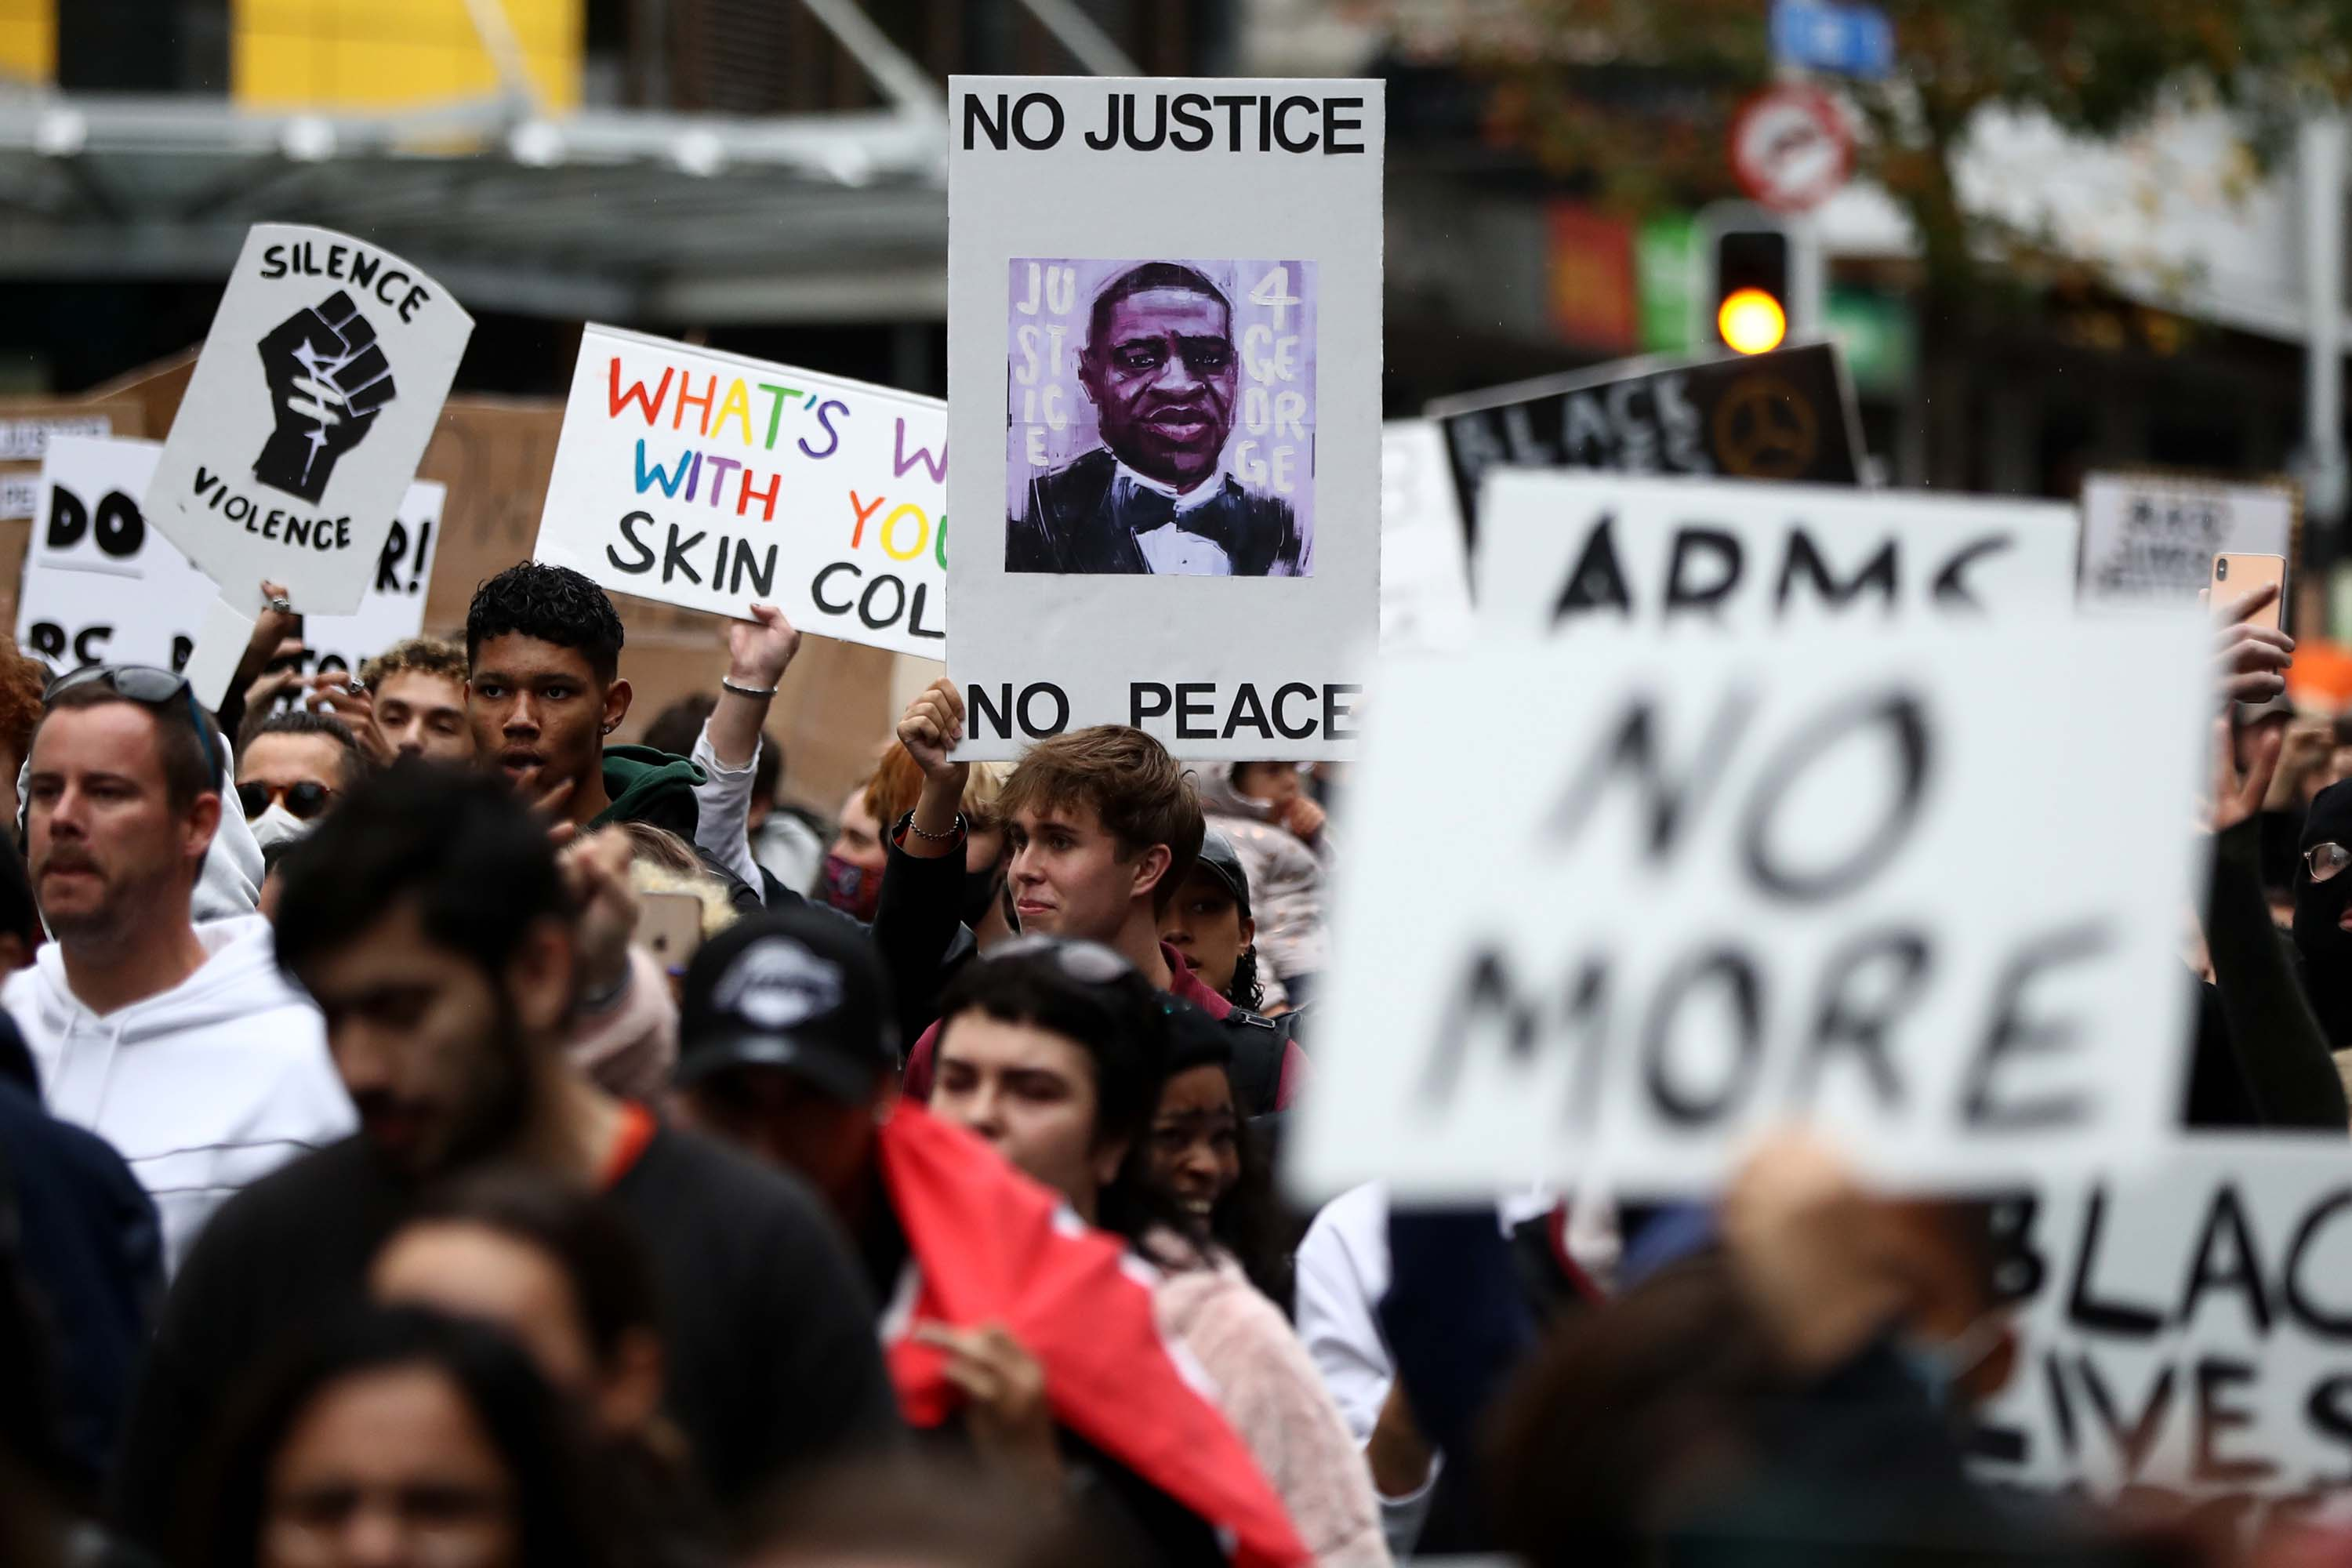 Thousands around the world protest George Floyd's death in global display of solidarity